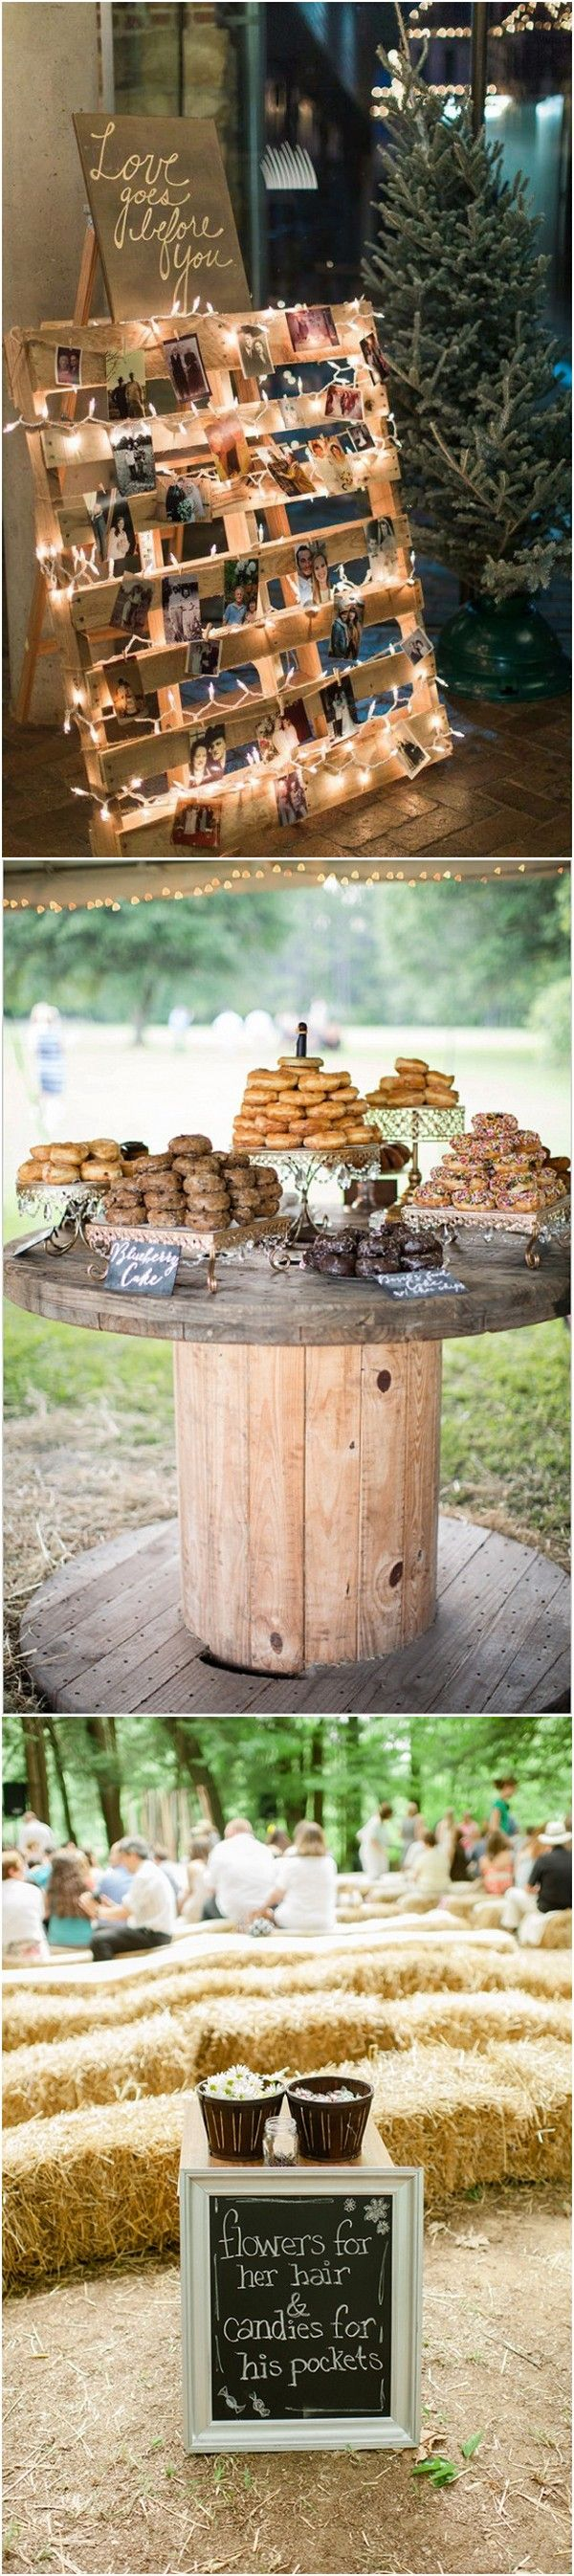 chic rustic boho wedding ideas #wedding #weddingideas #bohowedding